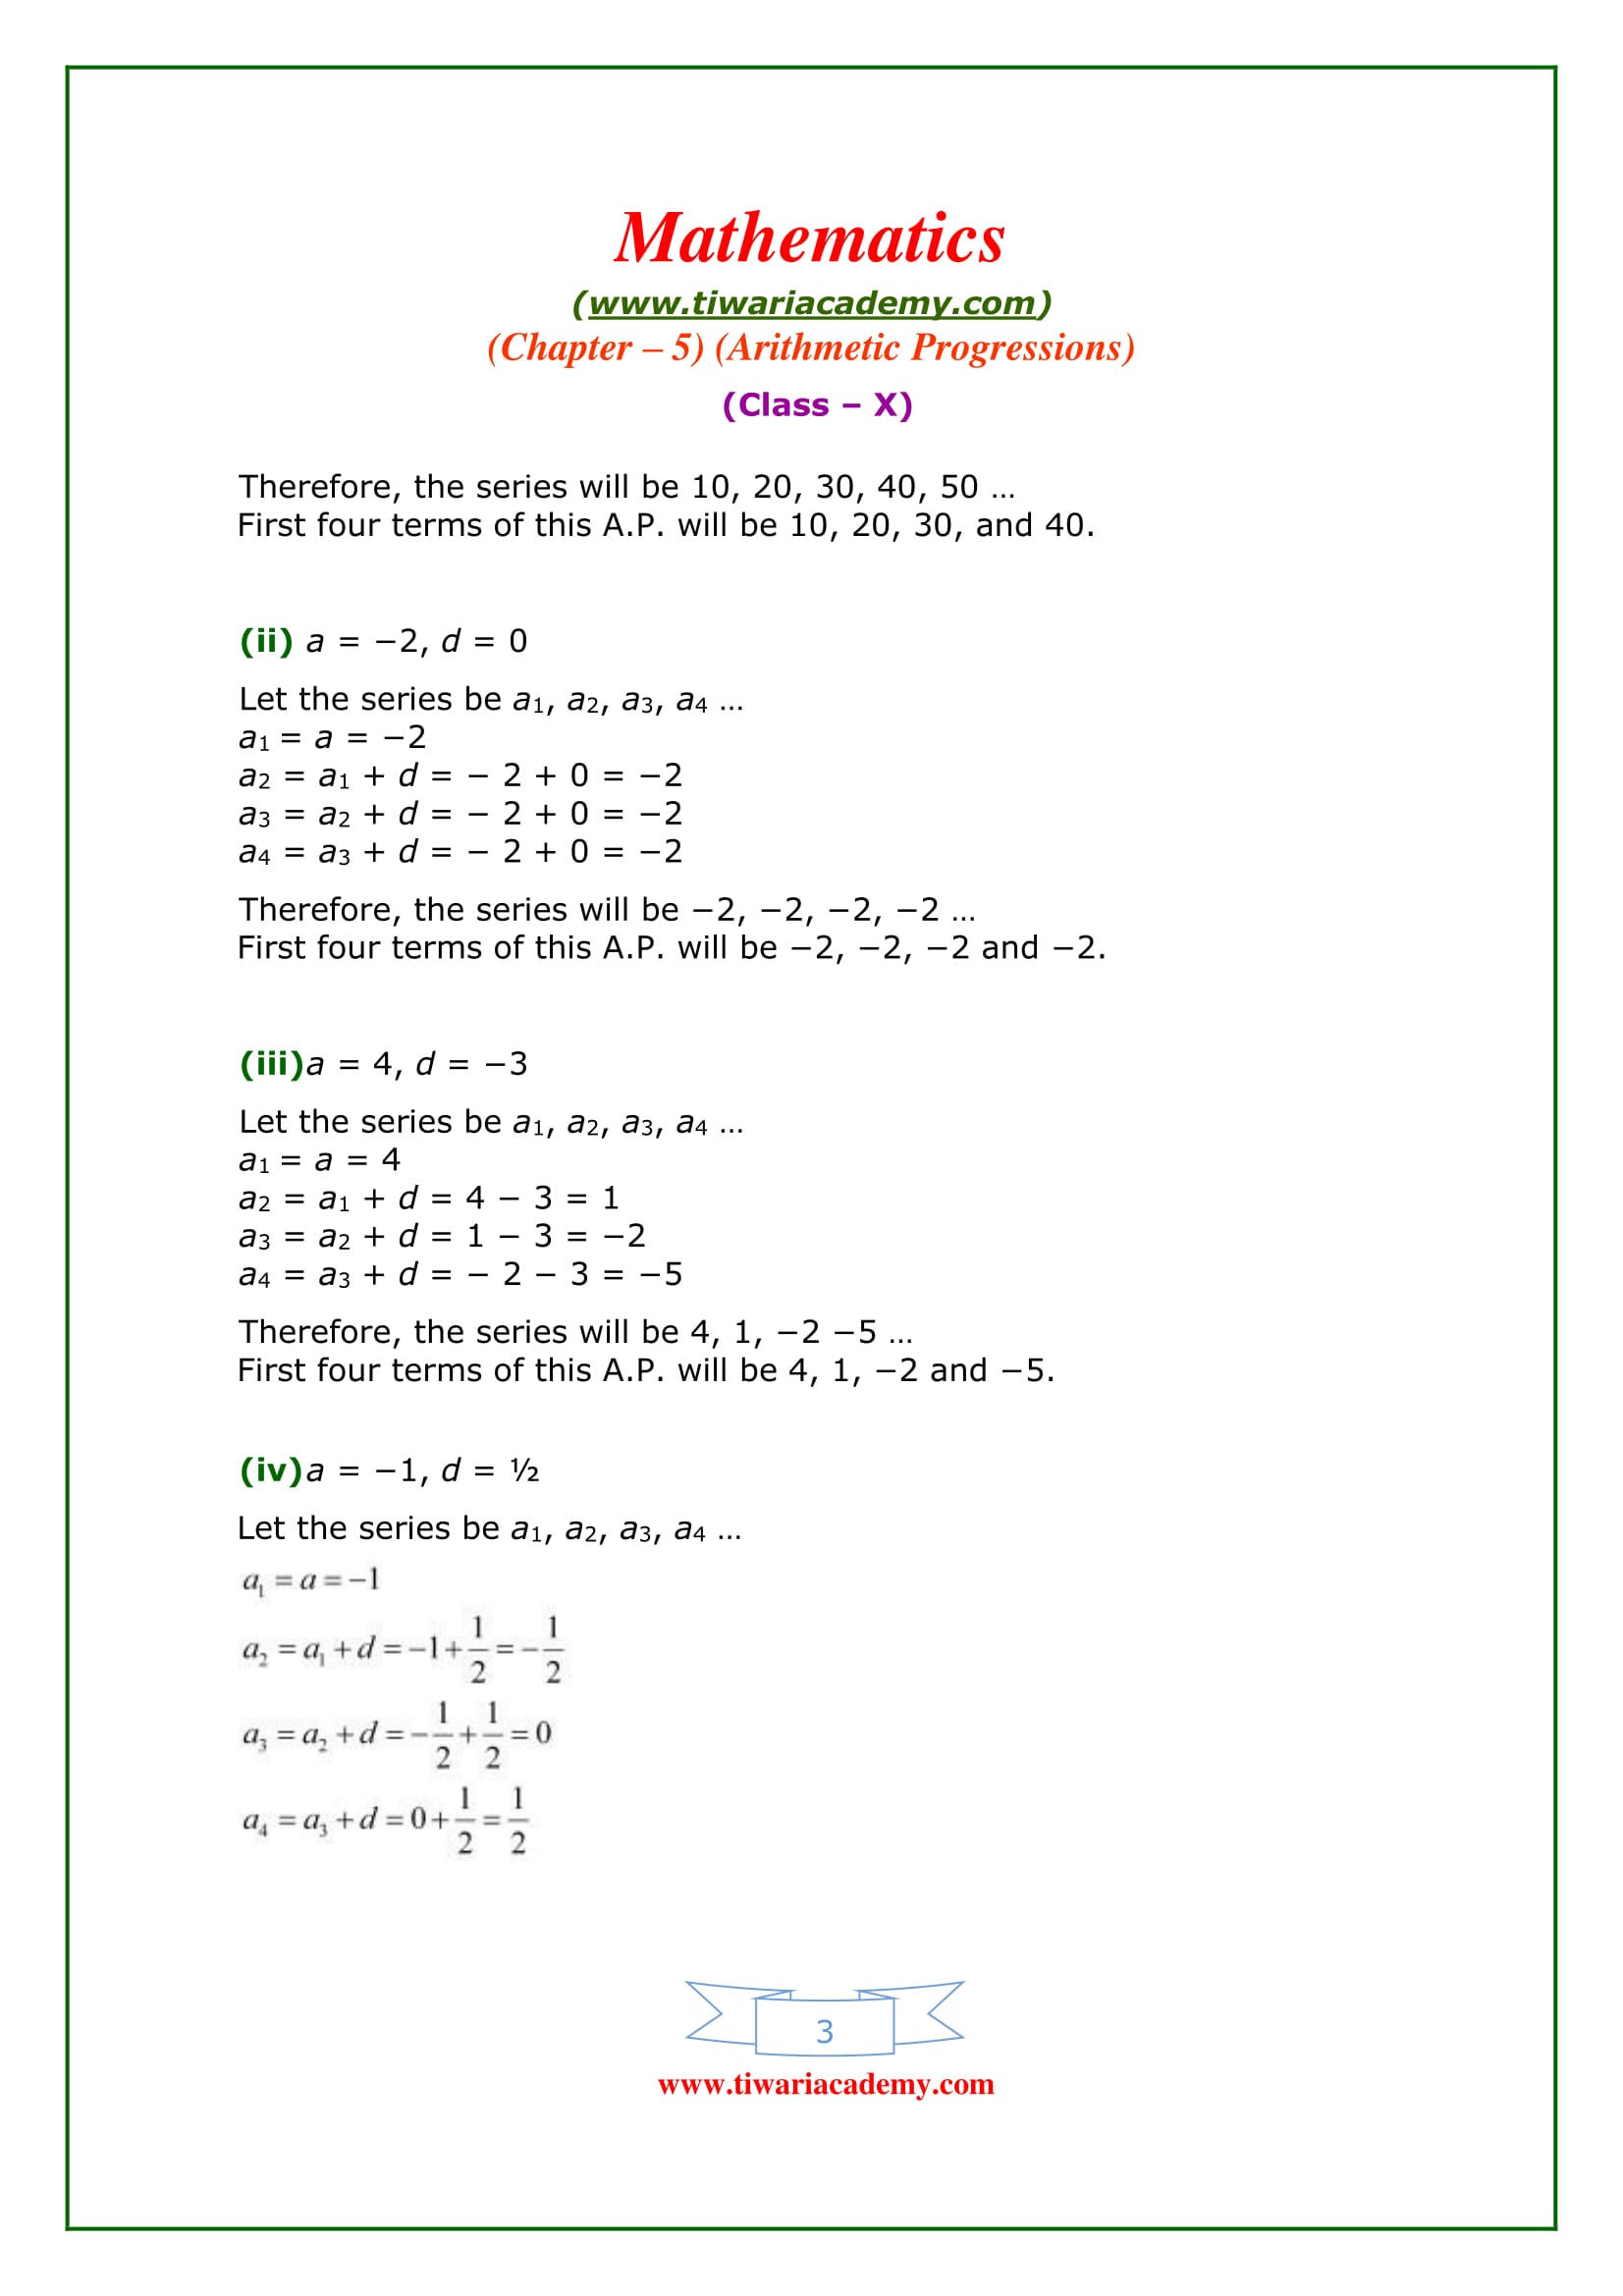 chapter 5 exercises Free pdf download of ncert solutions for class 10 maths chapter 5  all  arithmetic progressions exercise questions with solutions to help you to revise.